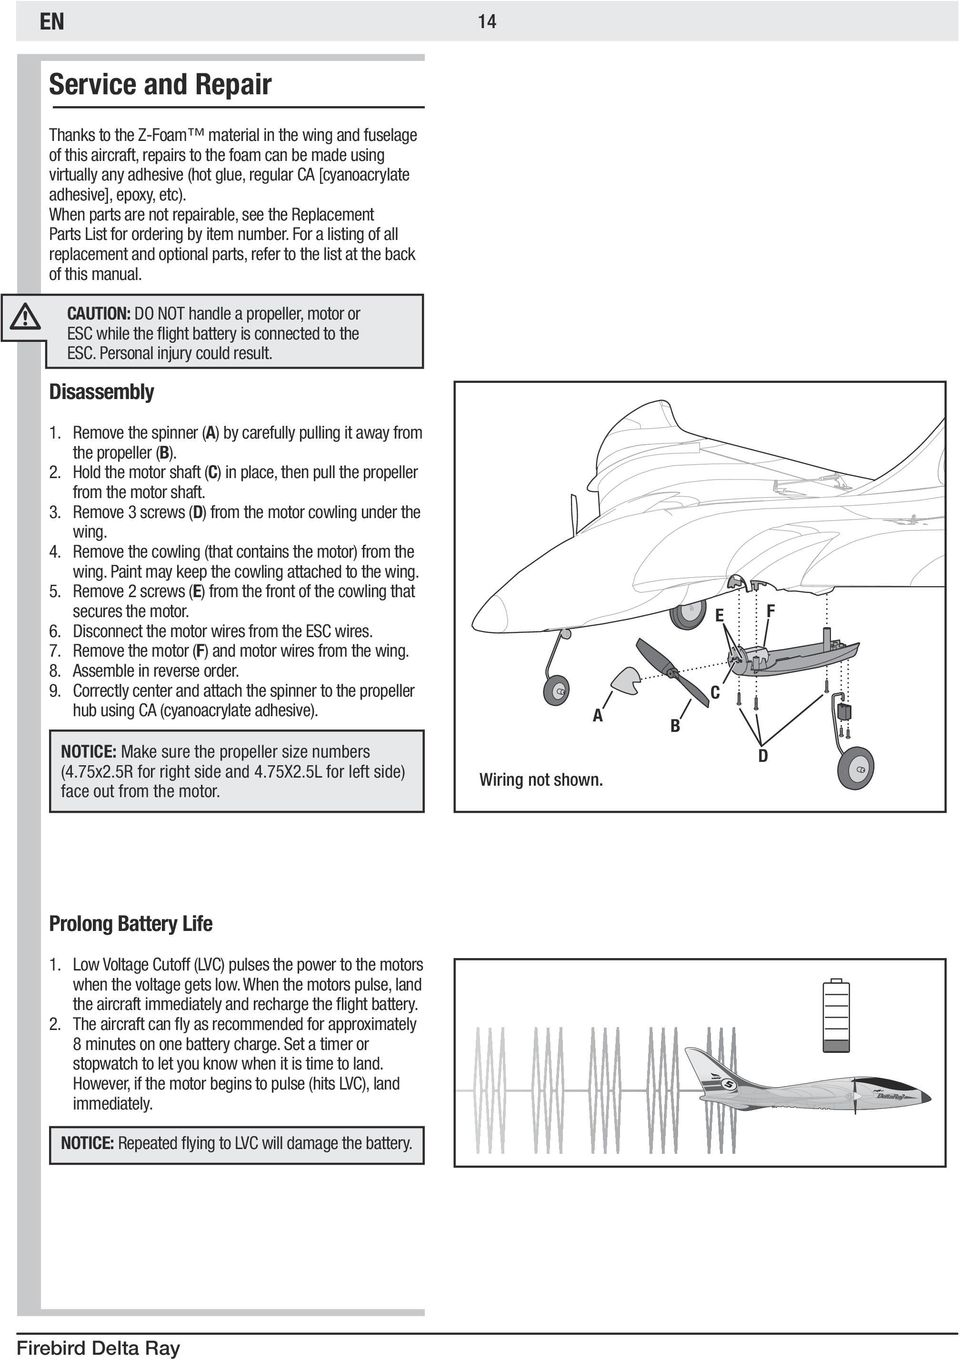 For a listing of all replacement and optional parts, refer to the list at the back of this manual. CAUTION: DO NOT handle a propeller, motor or ESC while the flight battery is connected to the ESC.